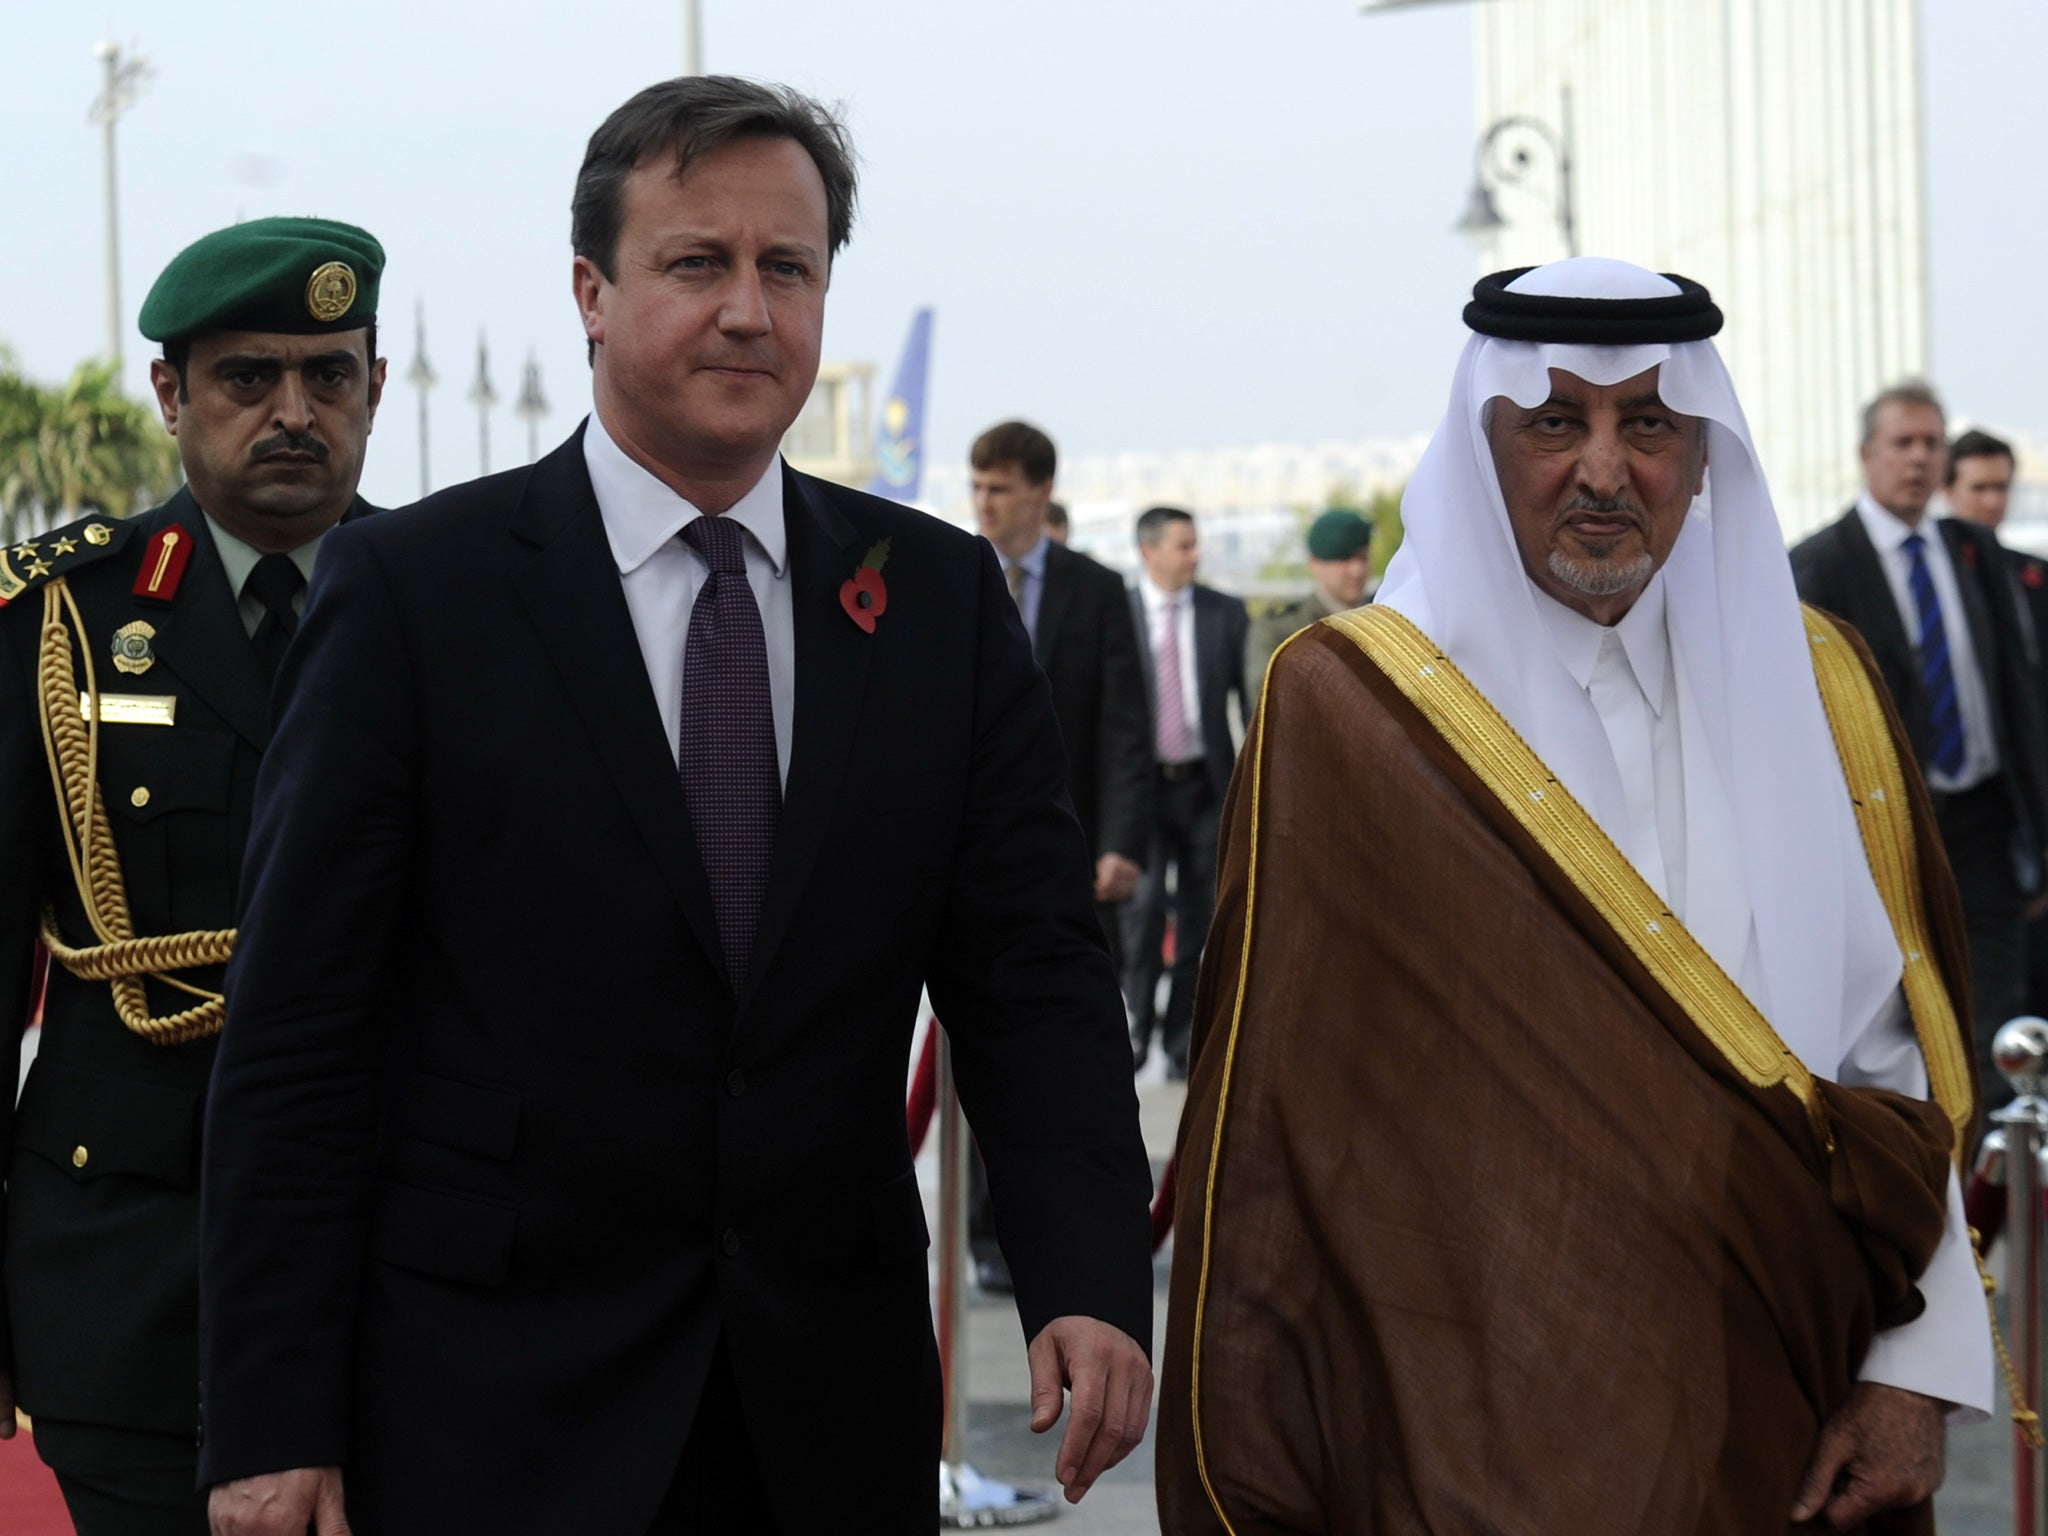 Britain could be prosecuted for war crimes over Saudi arms sales